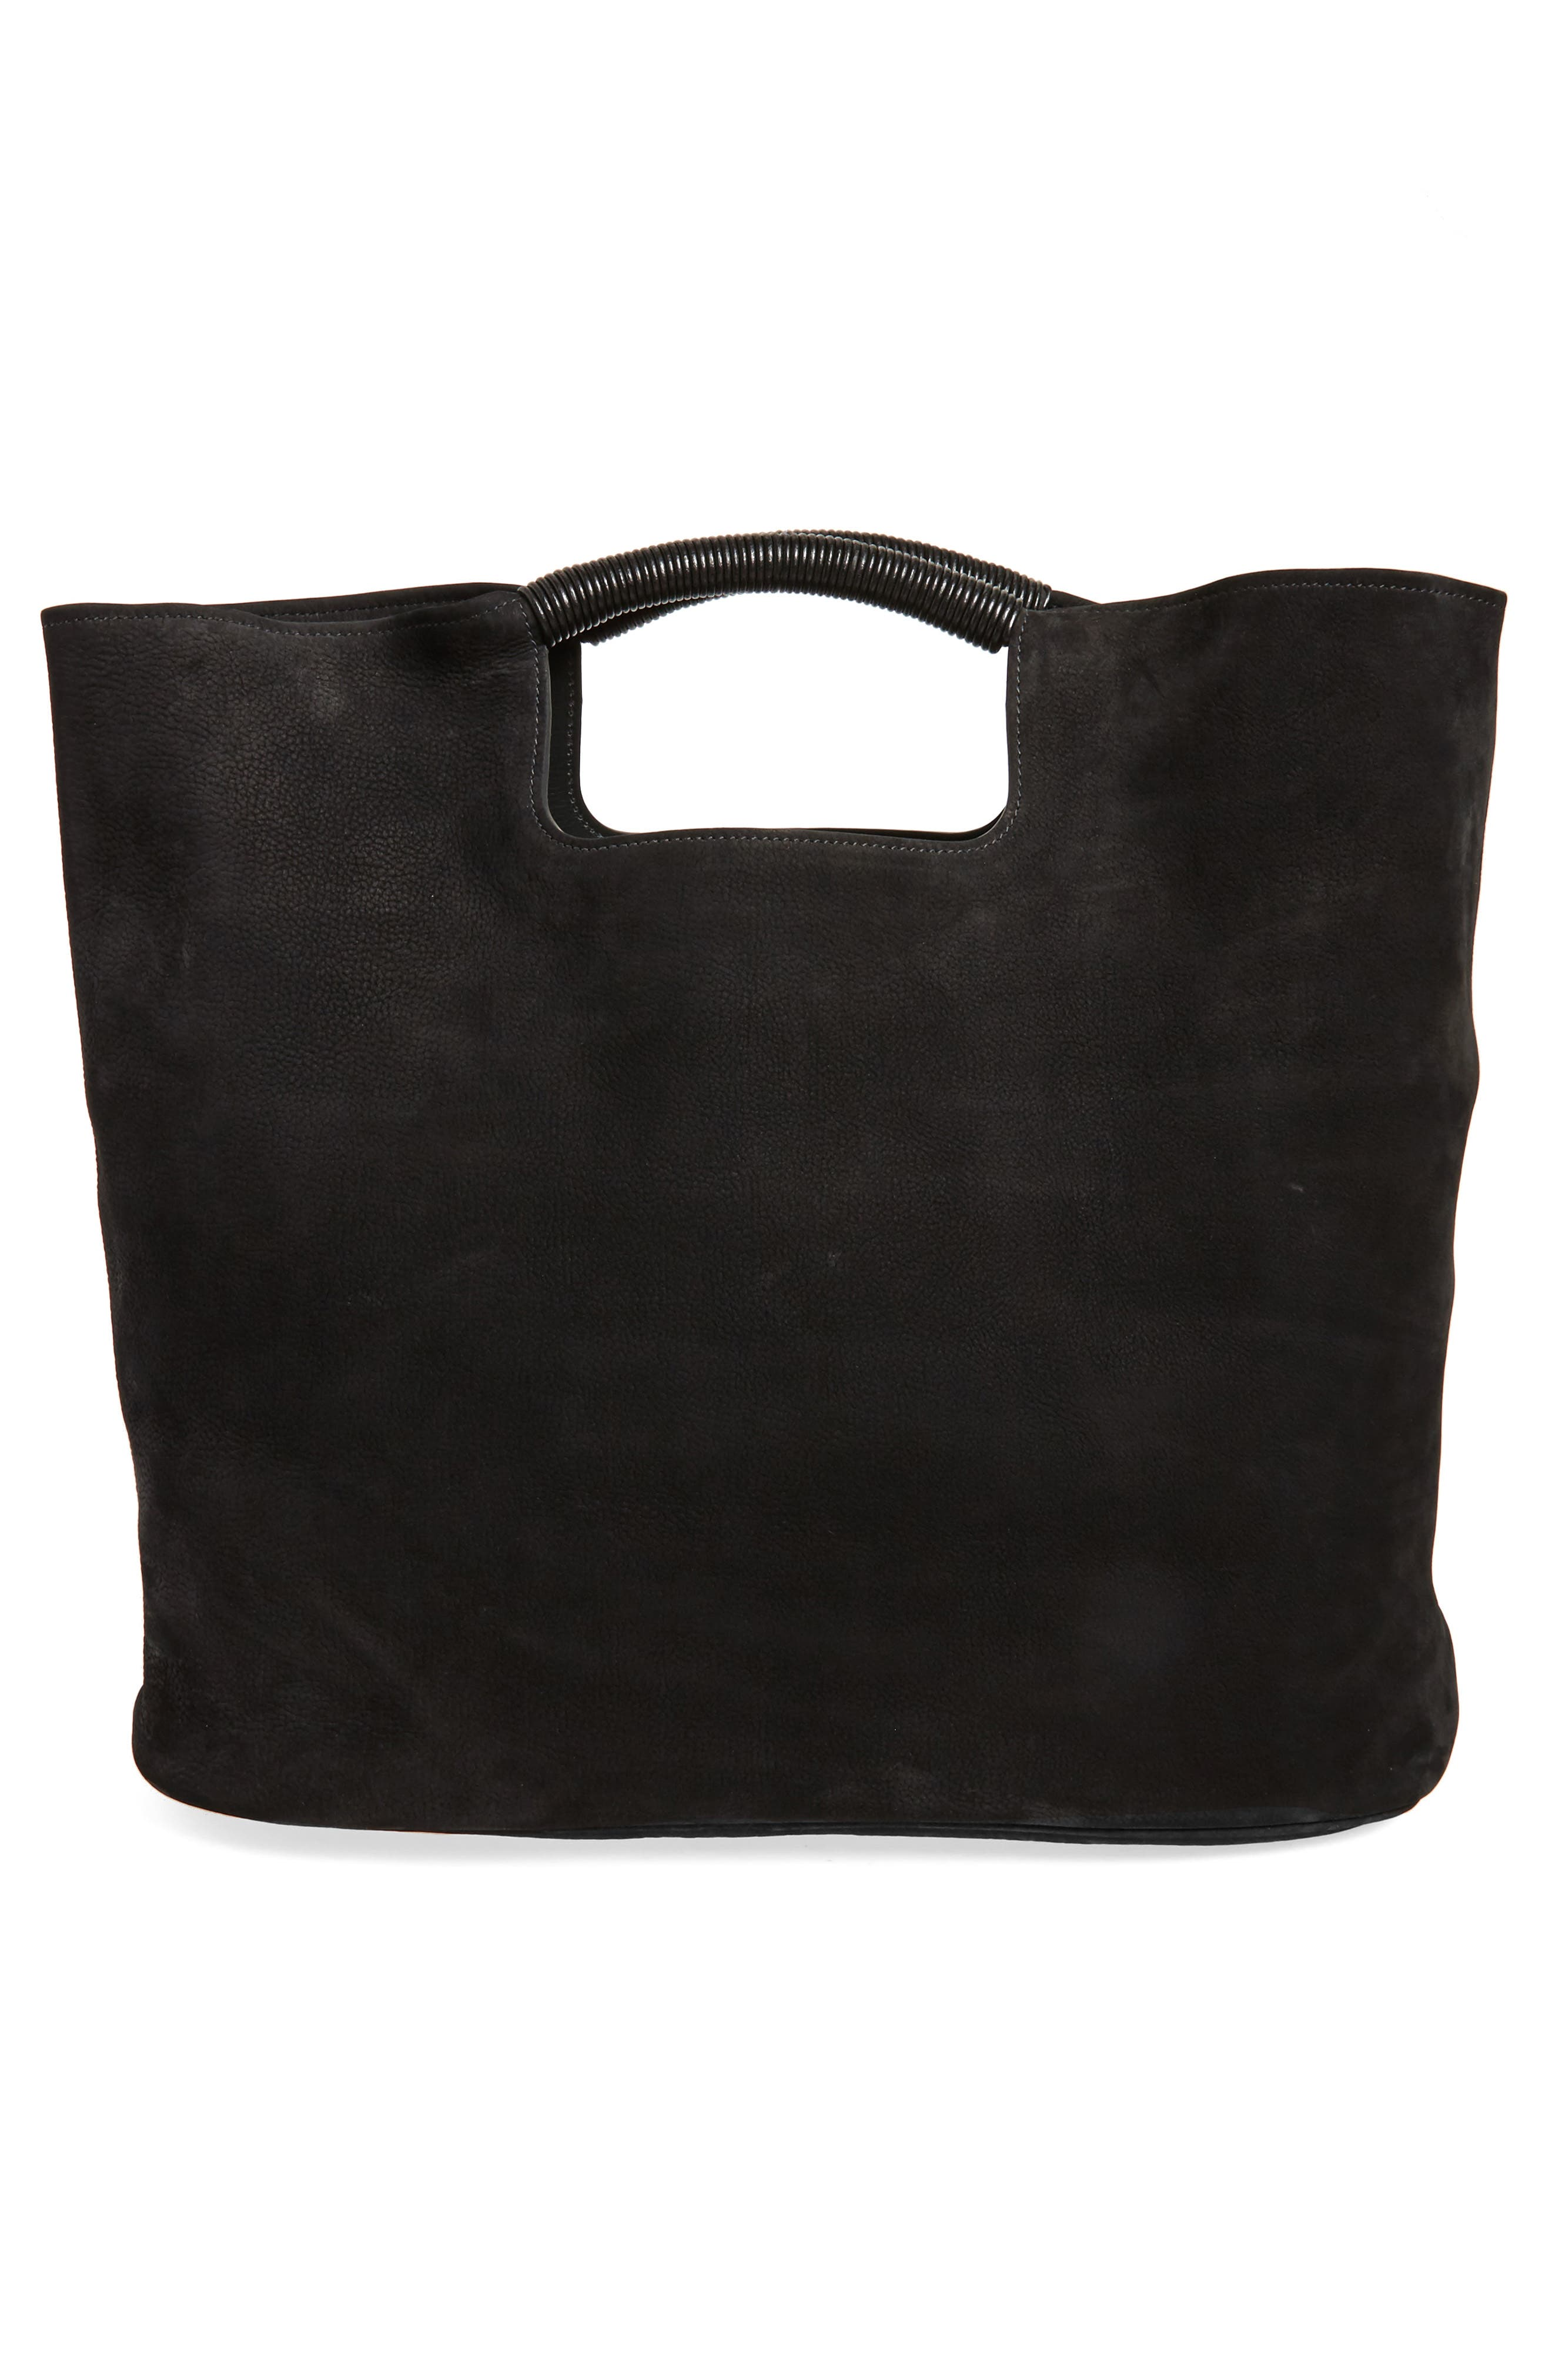 Birch Nubuck Tote,                             Alternate thumbnail 3, color,                             001